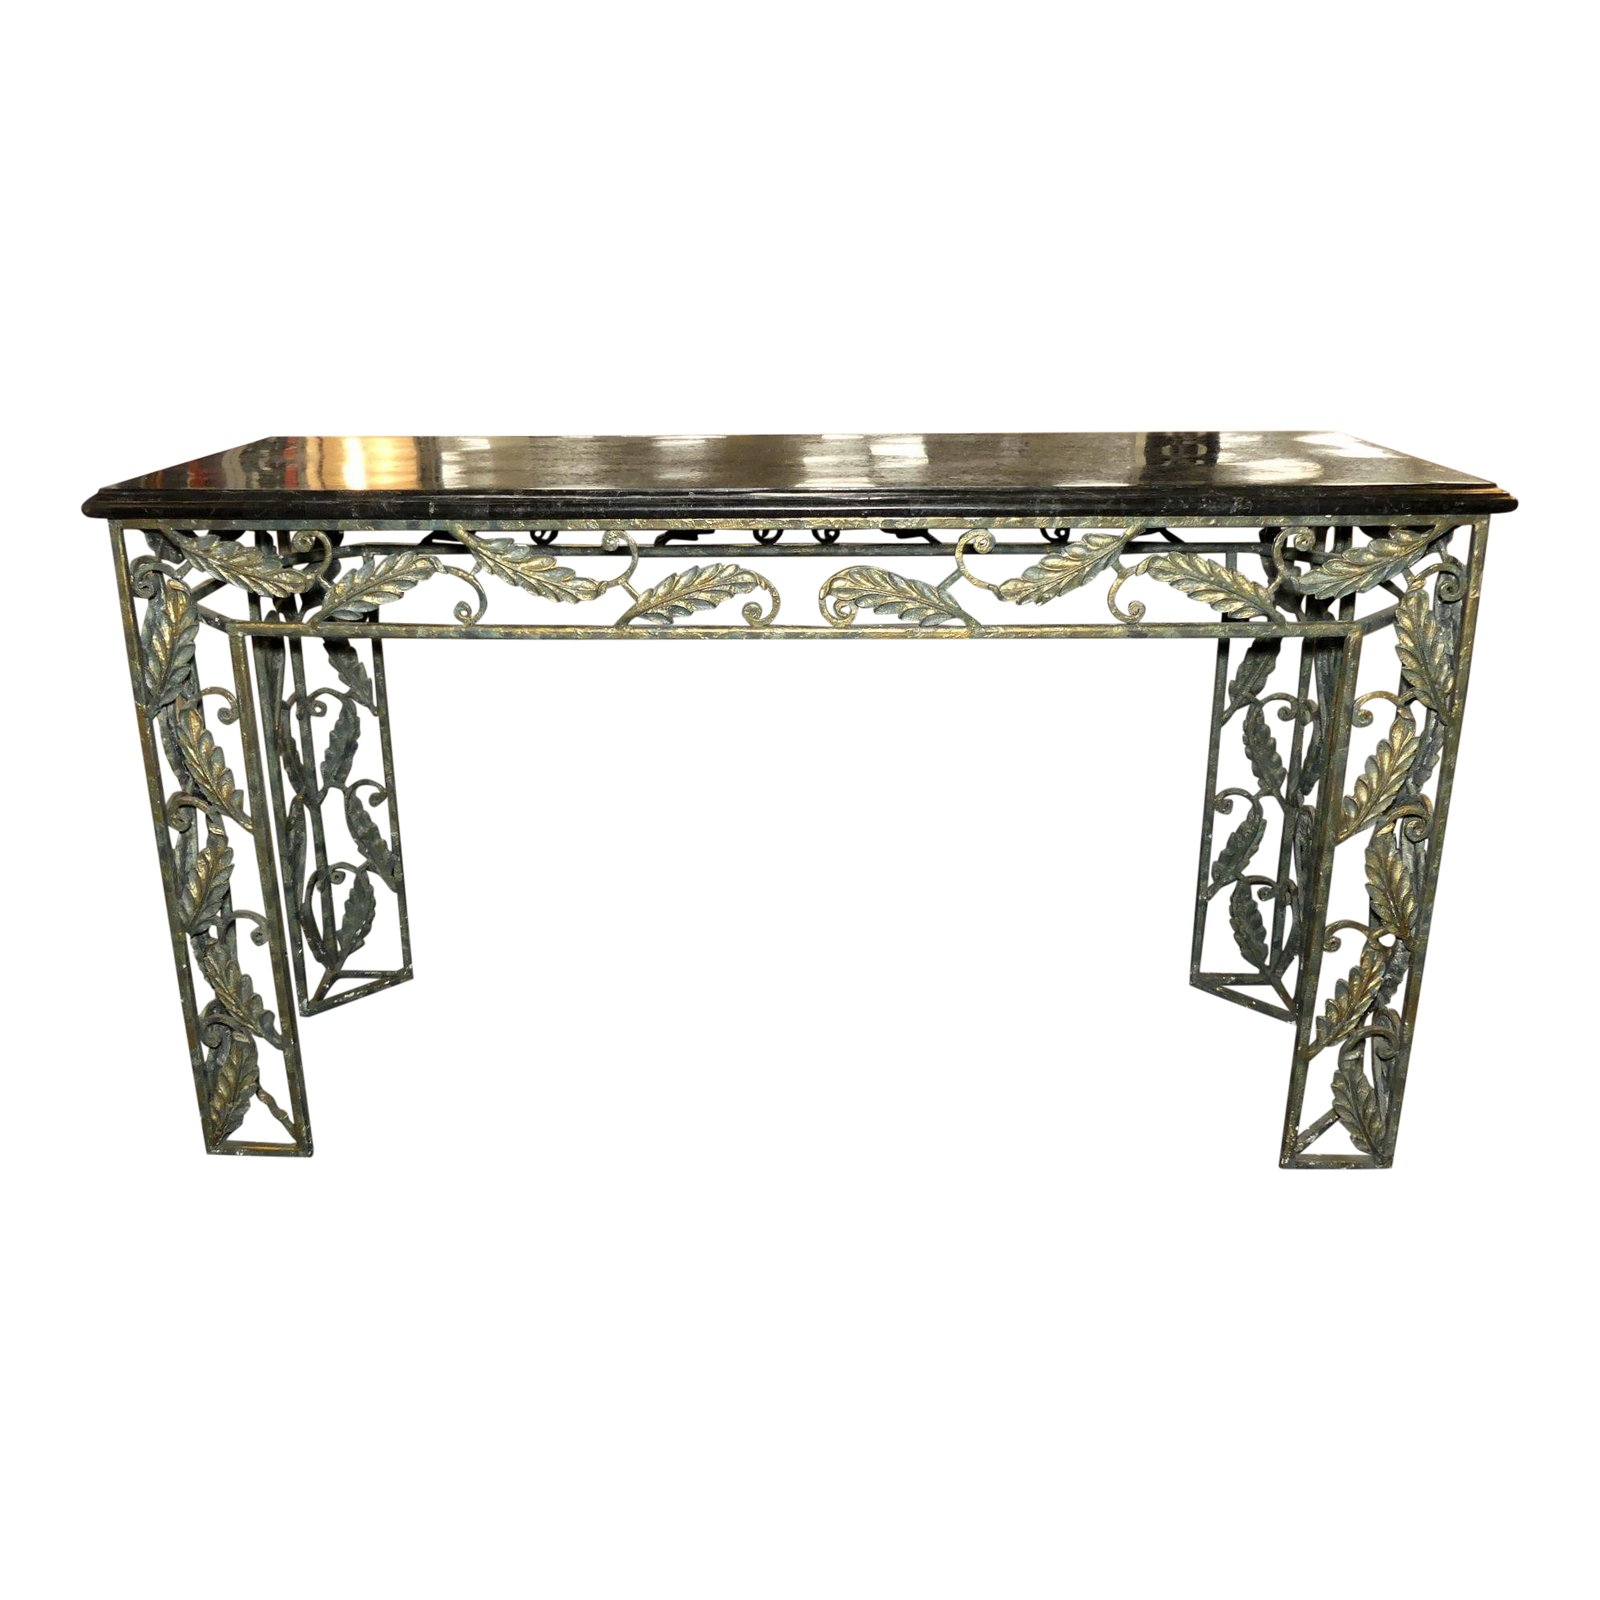 Maitland Smith Marble Top Iron Console with Patina Finish